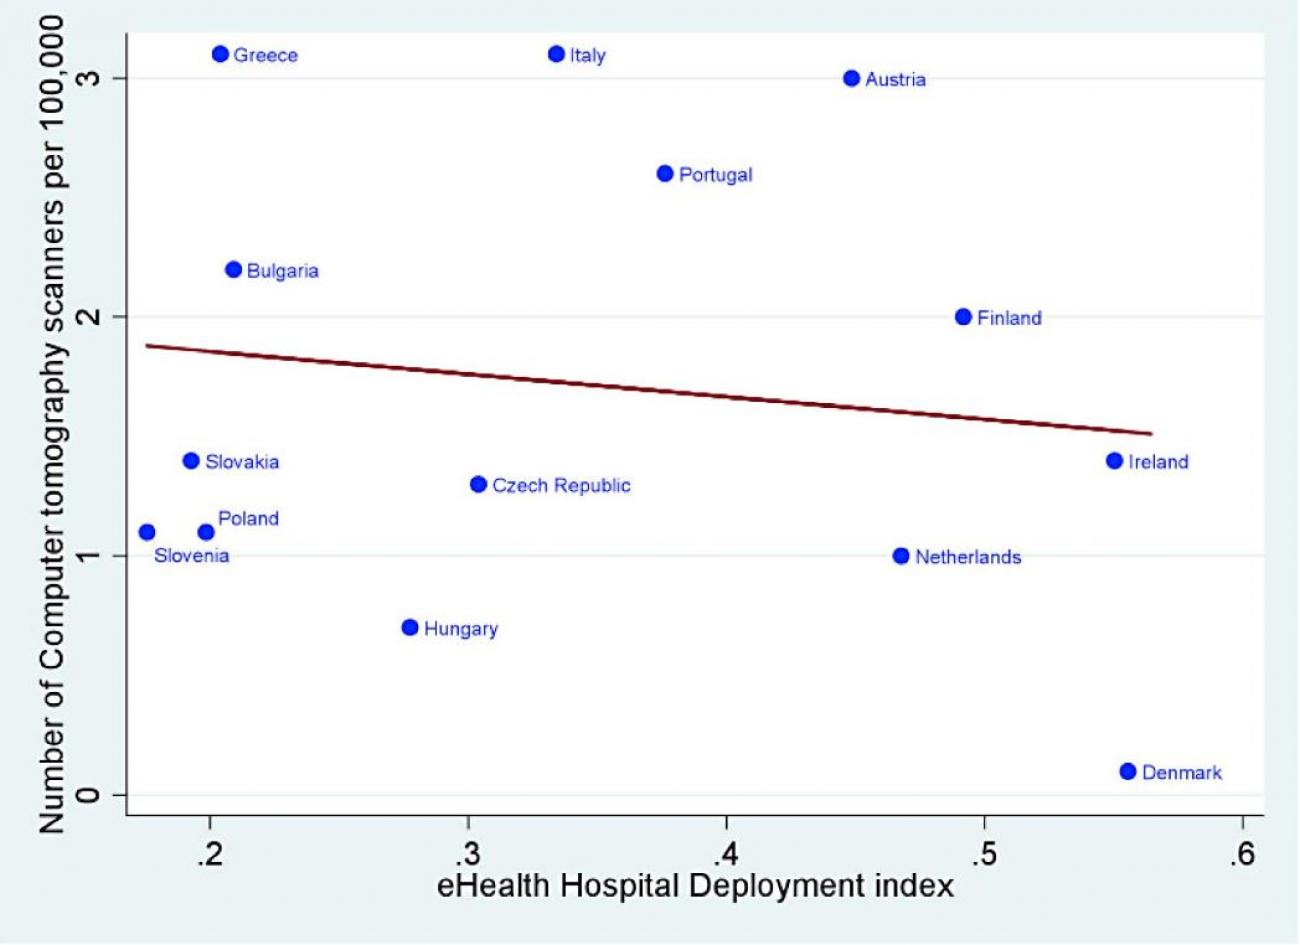 Hospitals__eHealth_Deployment_Composite_Index_and_number_of_CT_scanners